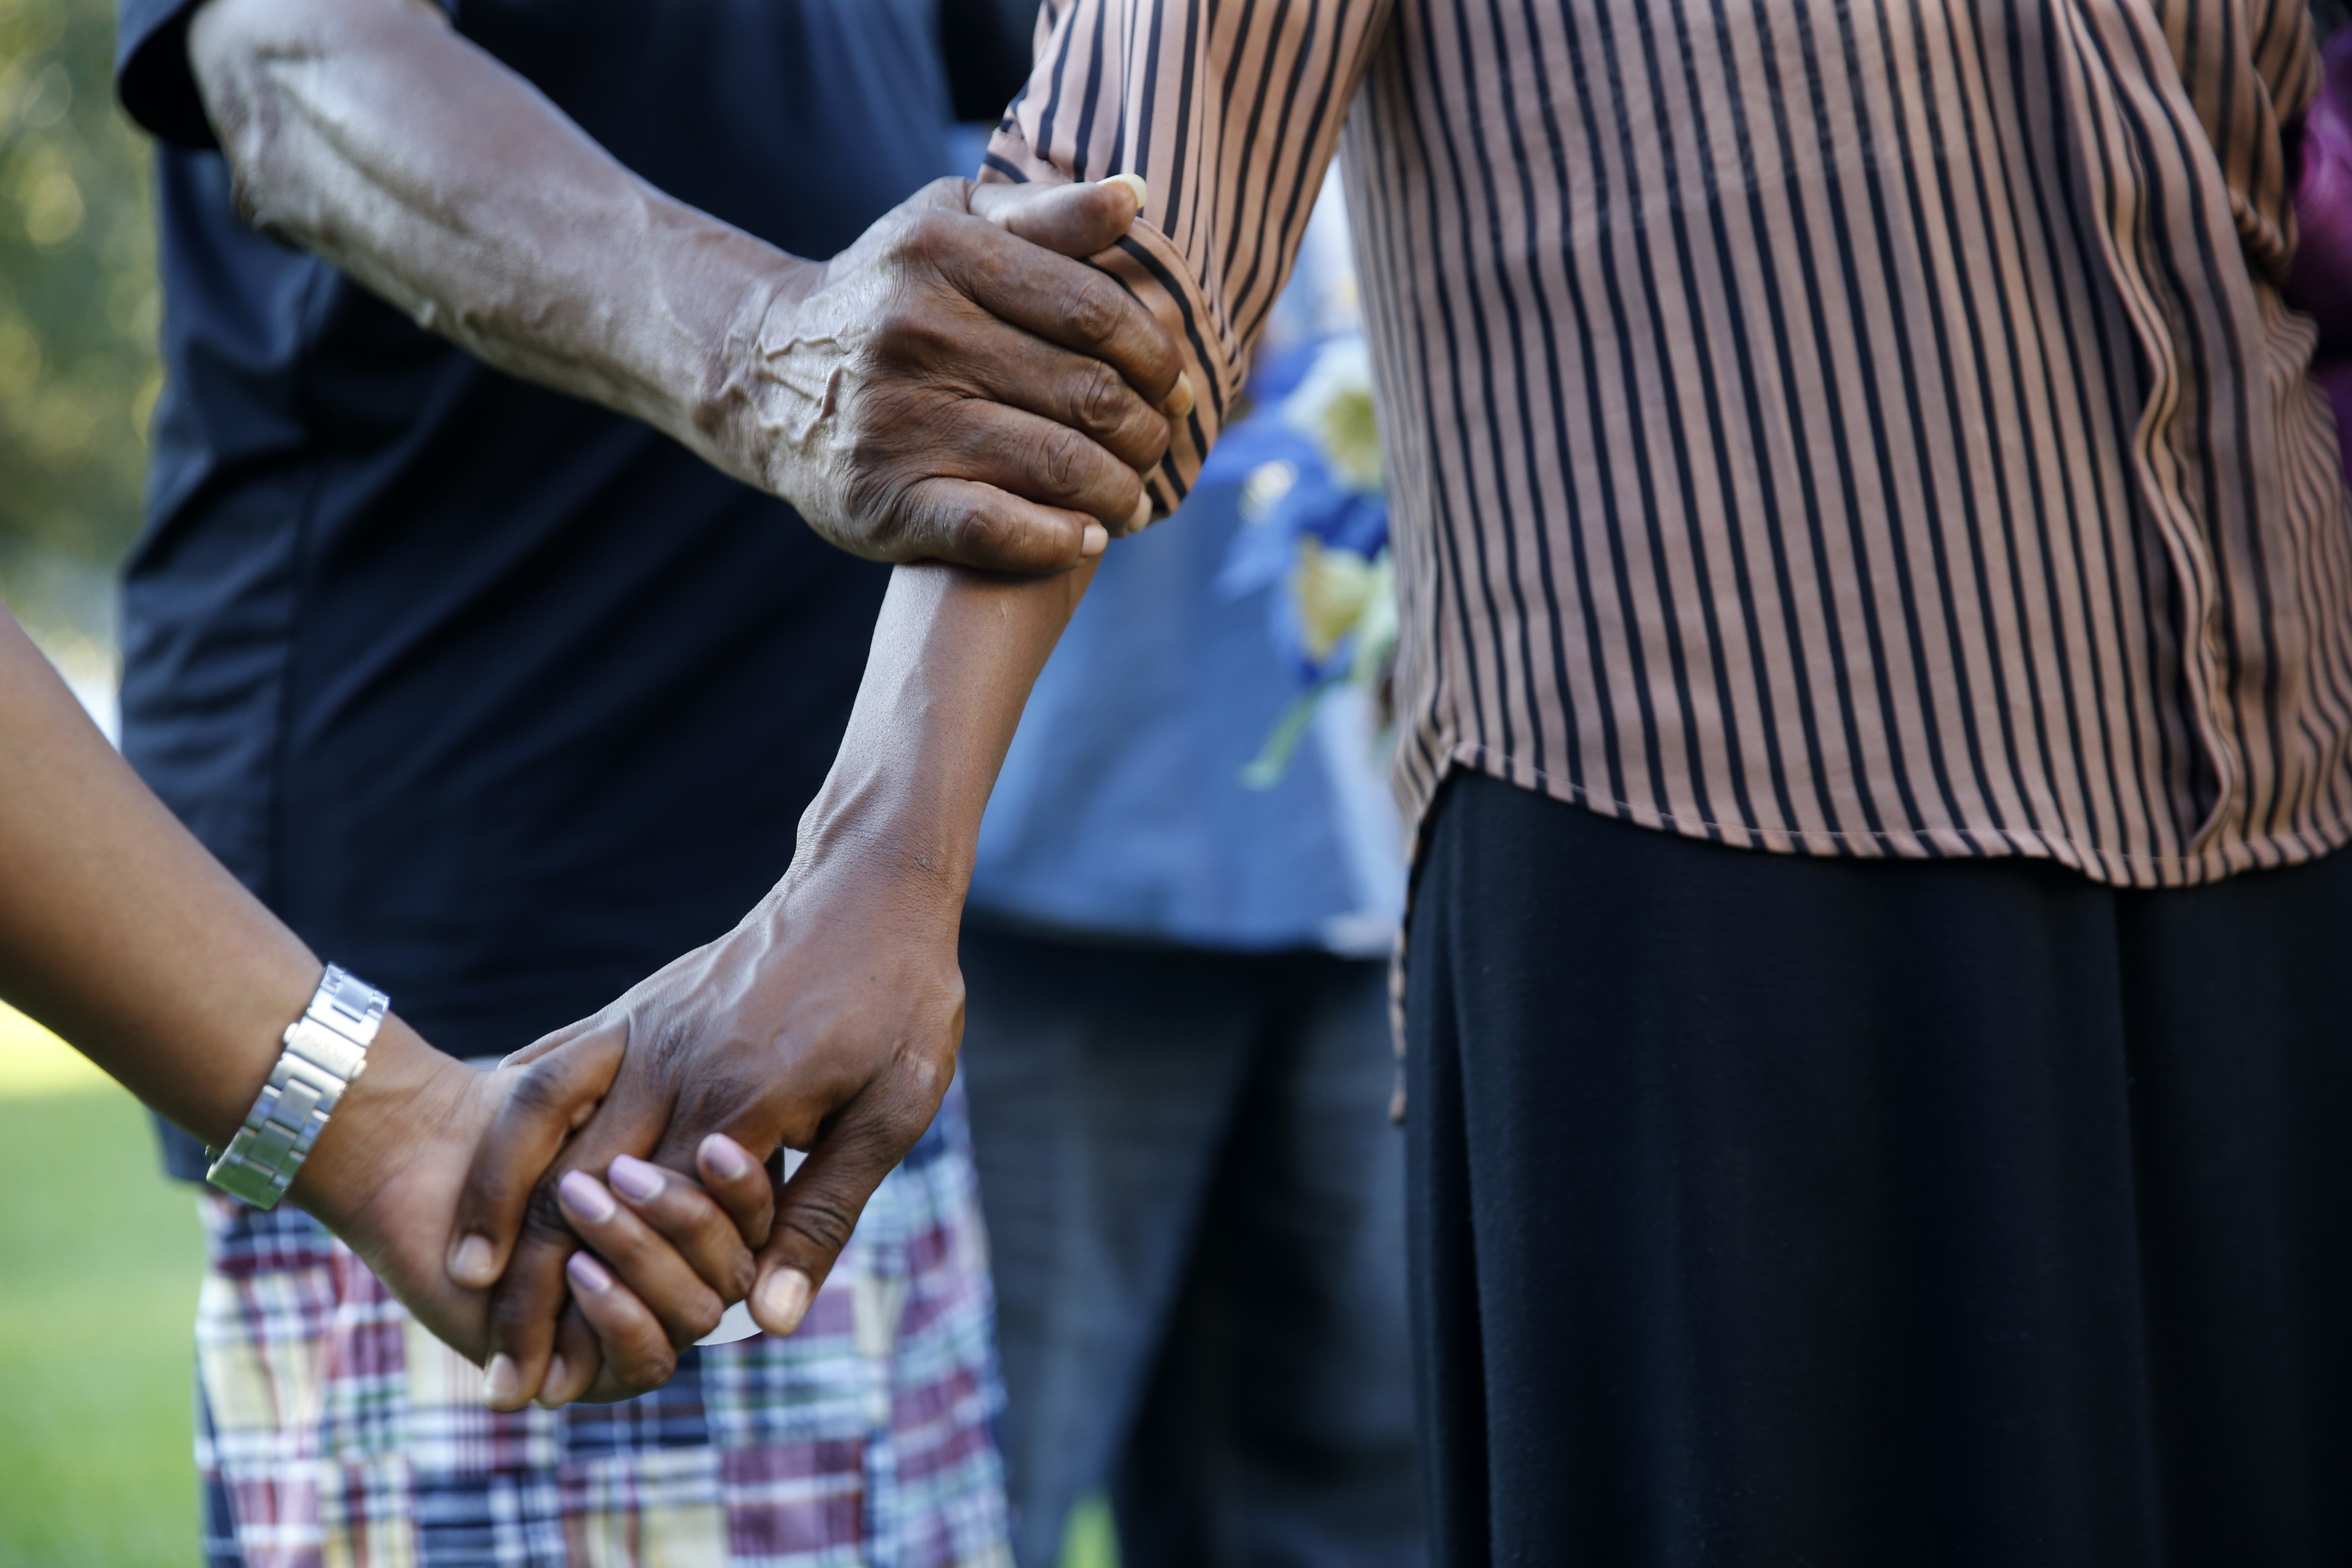 People hold hands in prayer at a candlelight vigil for Baton Rouge police officer Montrell Jackson, outside Istrouma High School, where he graduated in 2001, in Baton Rouge, La., Tuesday, July 19, 2016.